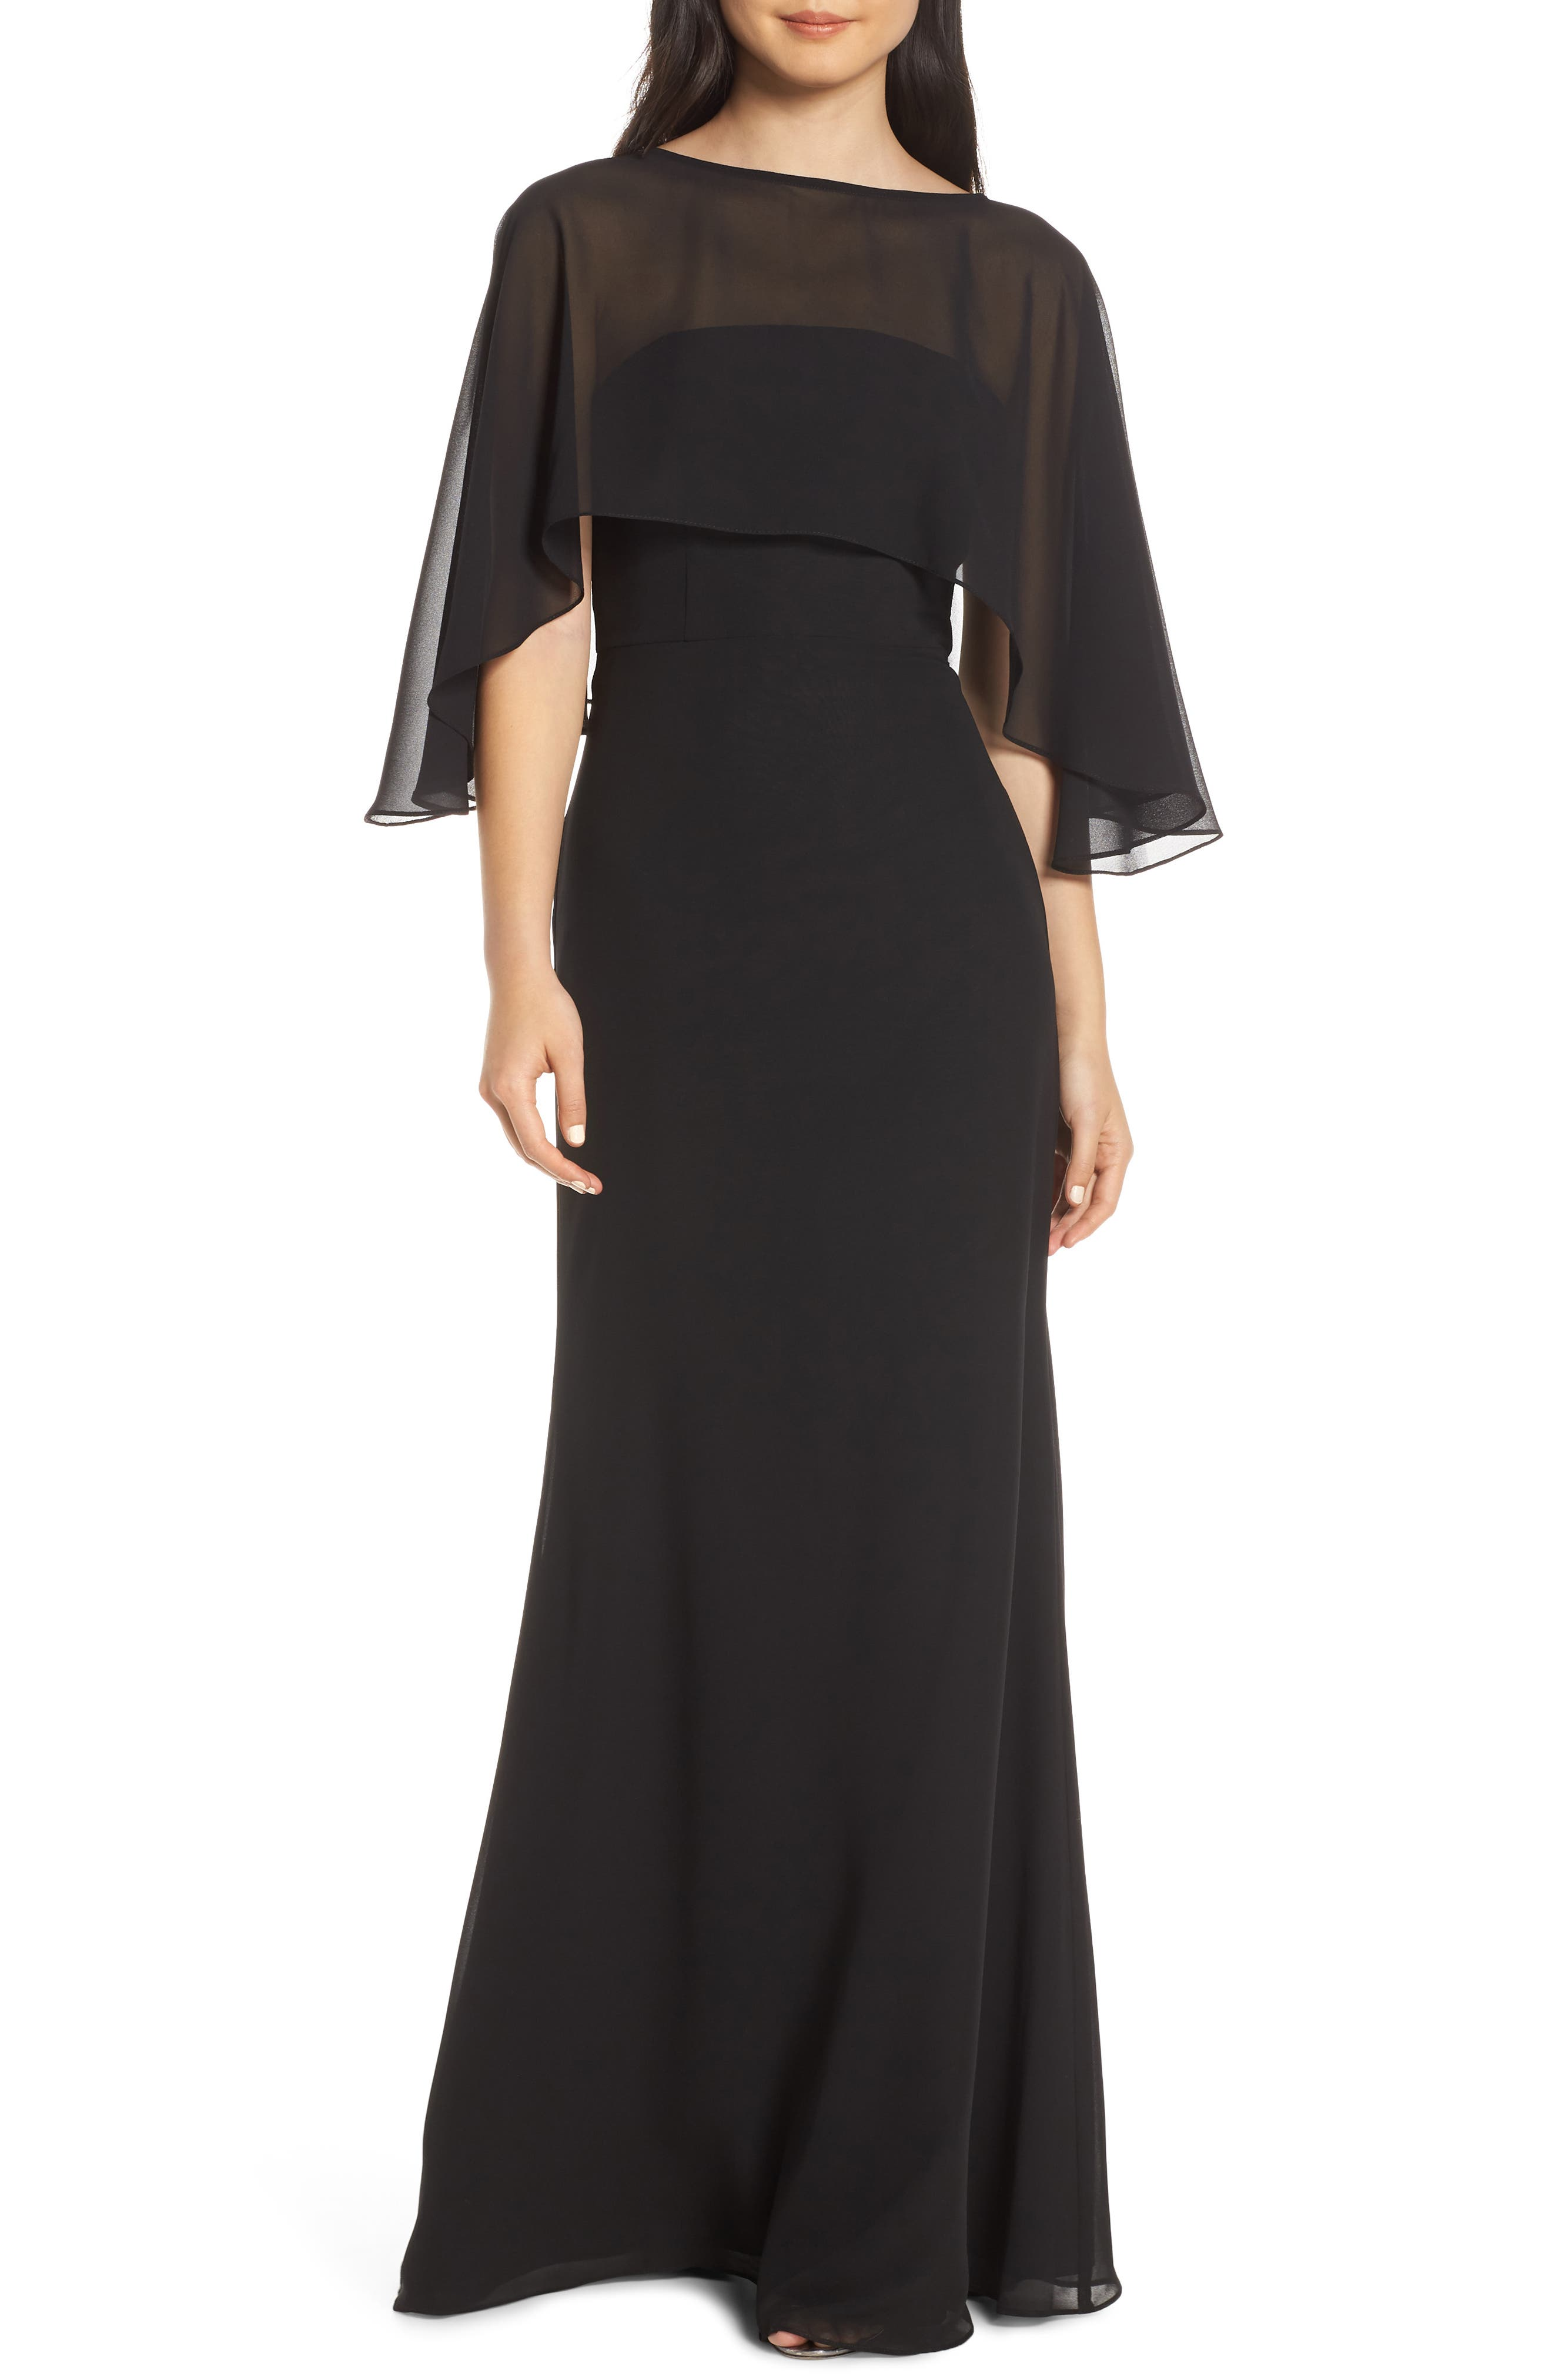 Hayley Paige Occasions Strapless Chiffon Evening Dress With Cape, Black